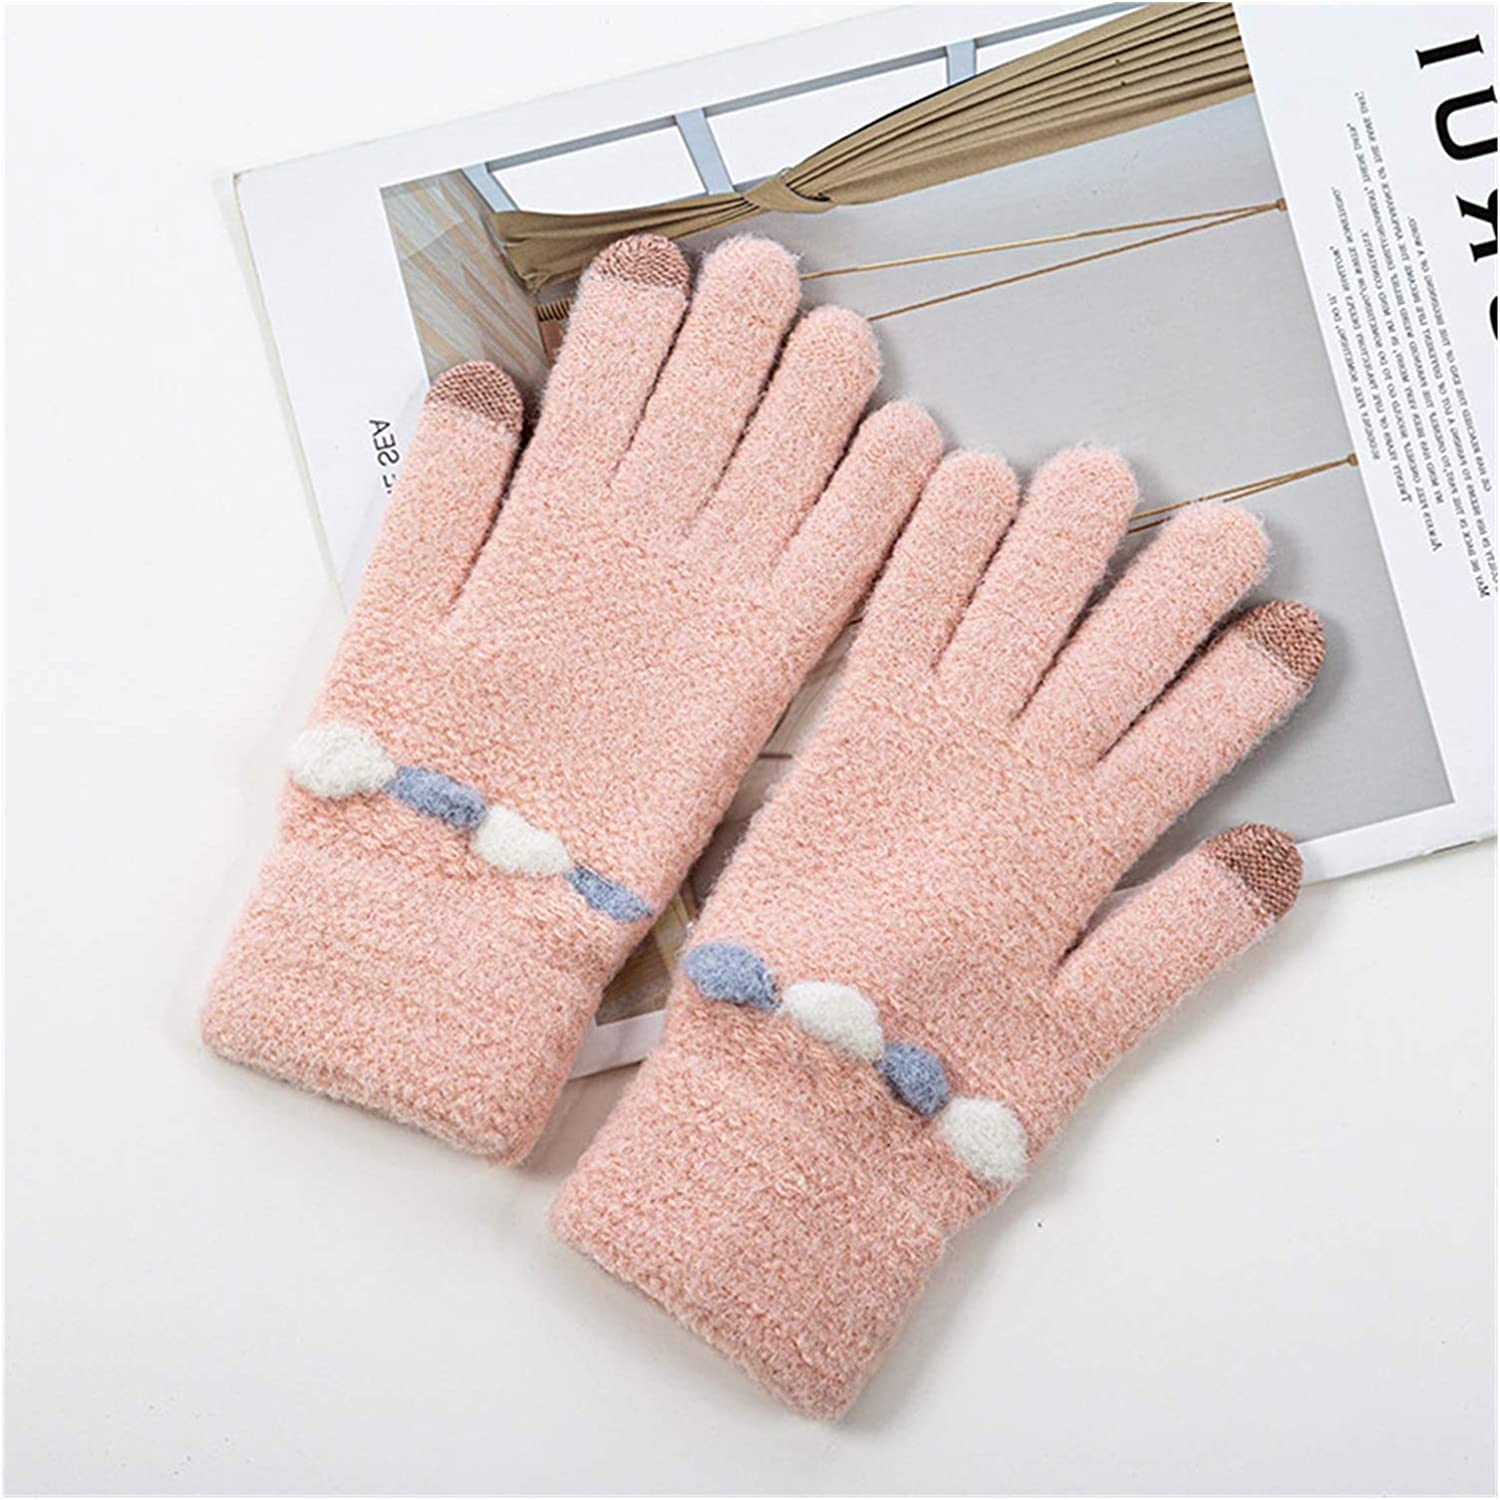 PENGYMY Winter Gloves Winter Knitted Gloves Women Fashion Knit Gloves Mittens Female Thick Plush Warm Wrist Driving Glove Wholesale (Color : Light Pink, Gloves Size : One Size)